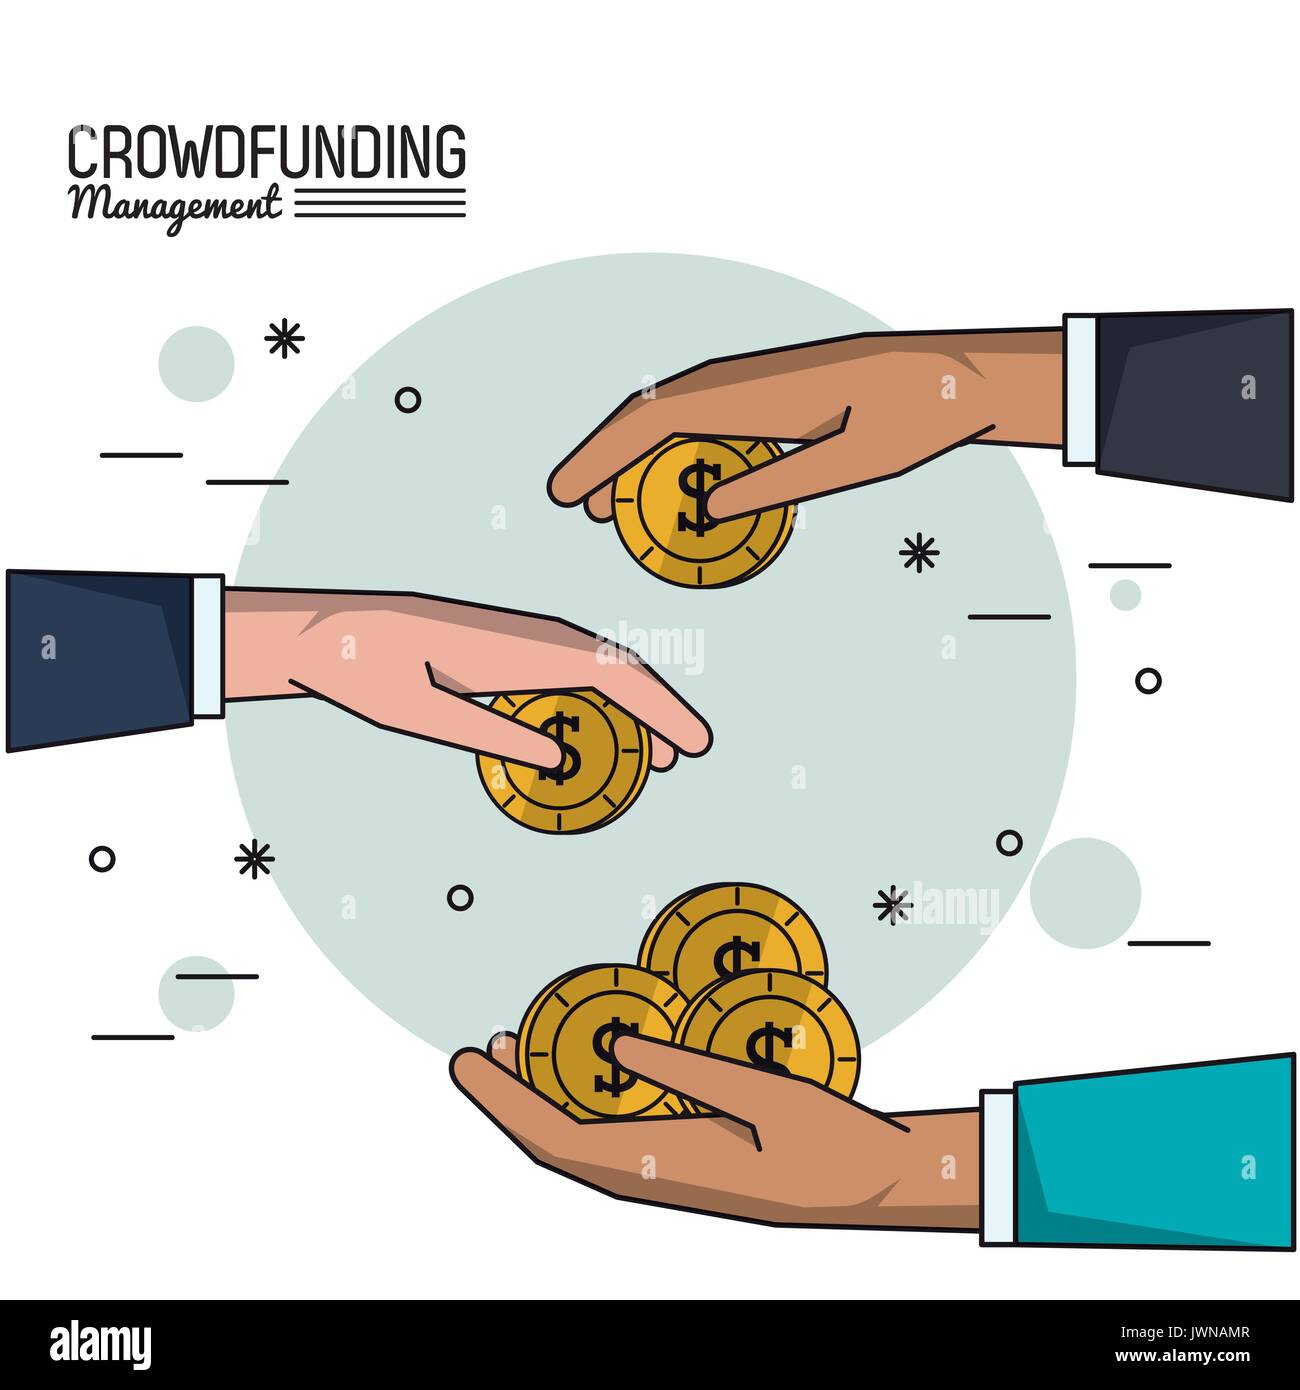 colorful poster of crowd funding management with hands with money - Stock Image